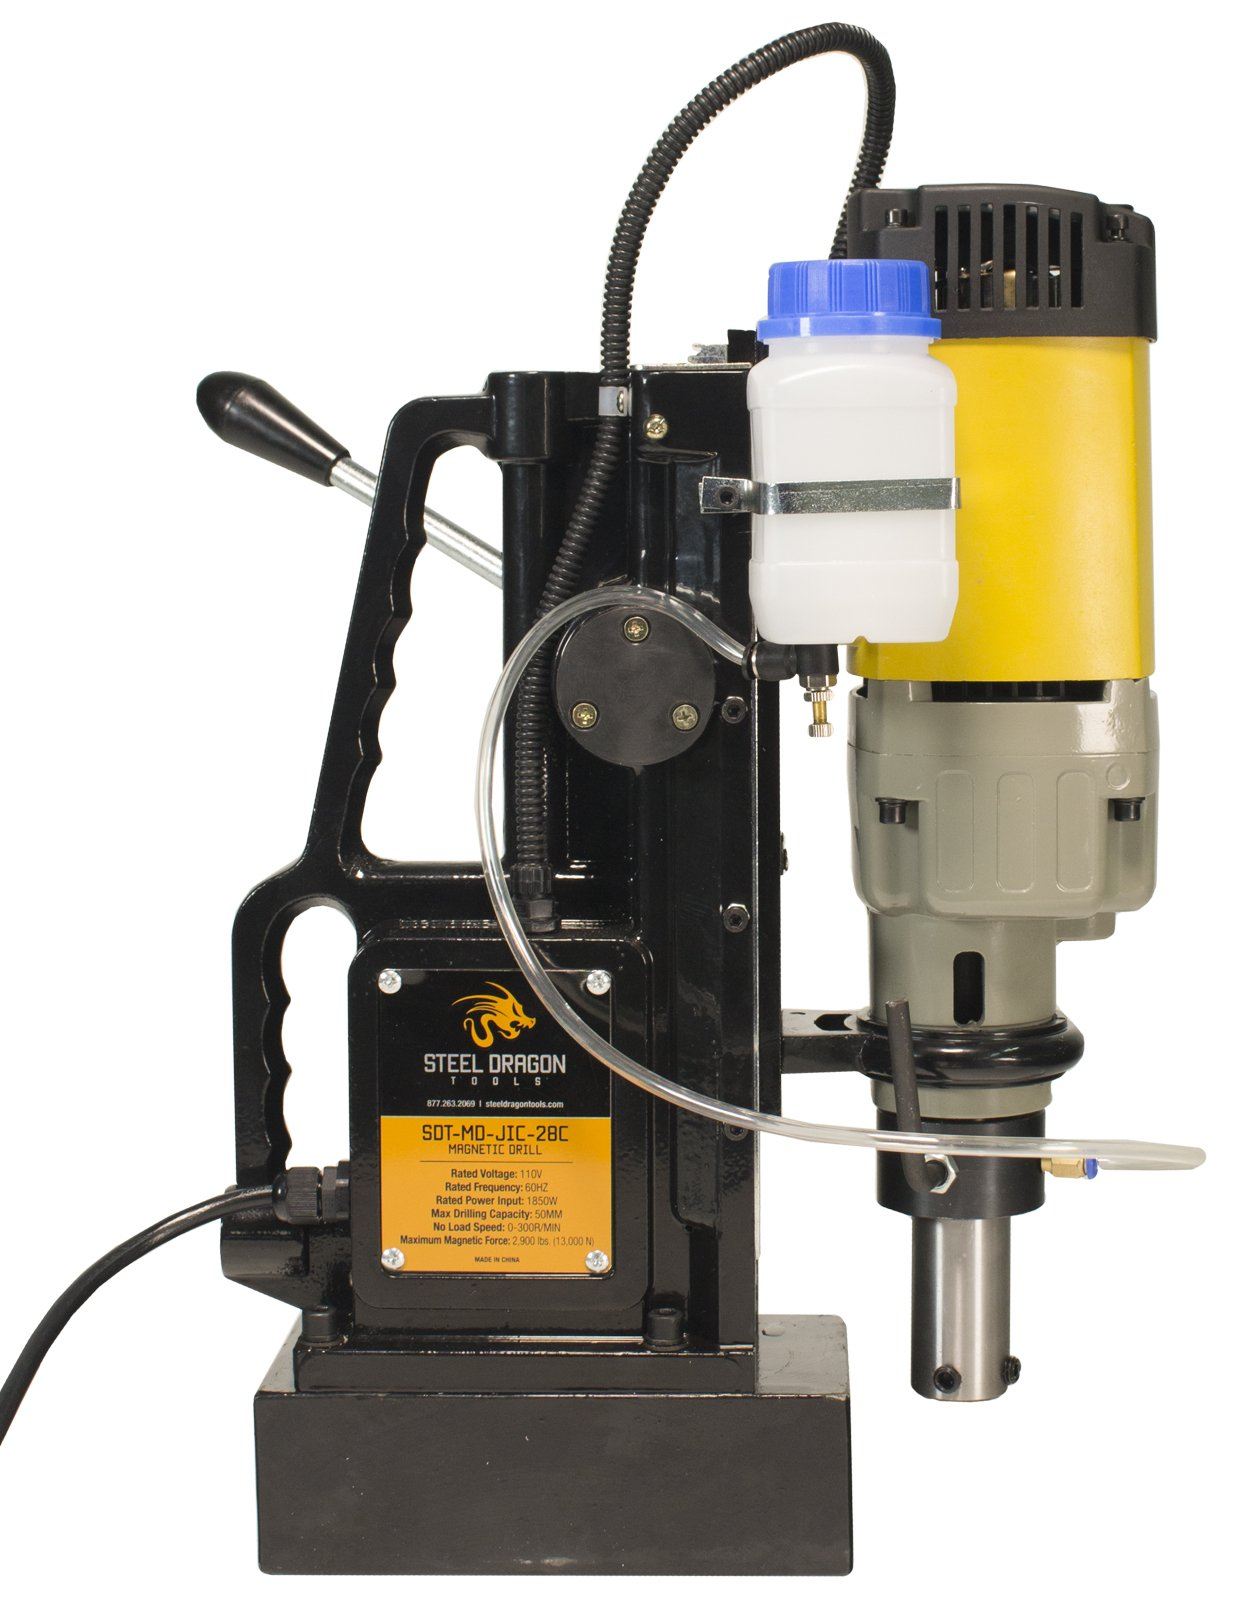 Steel Dragon Tools MD50 Magnetic Drill Press with 2'' Boring Diameter and 2,900 LBS Magnetic Force by Steel Dragon Tools (Image #4)